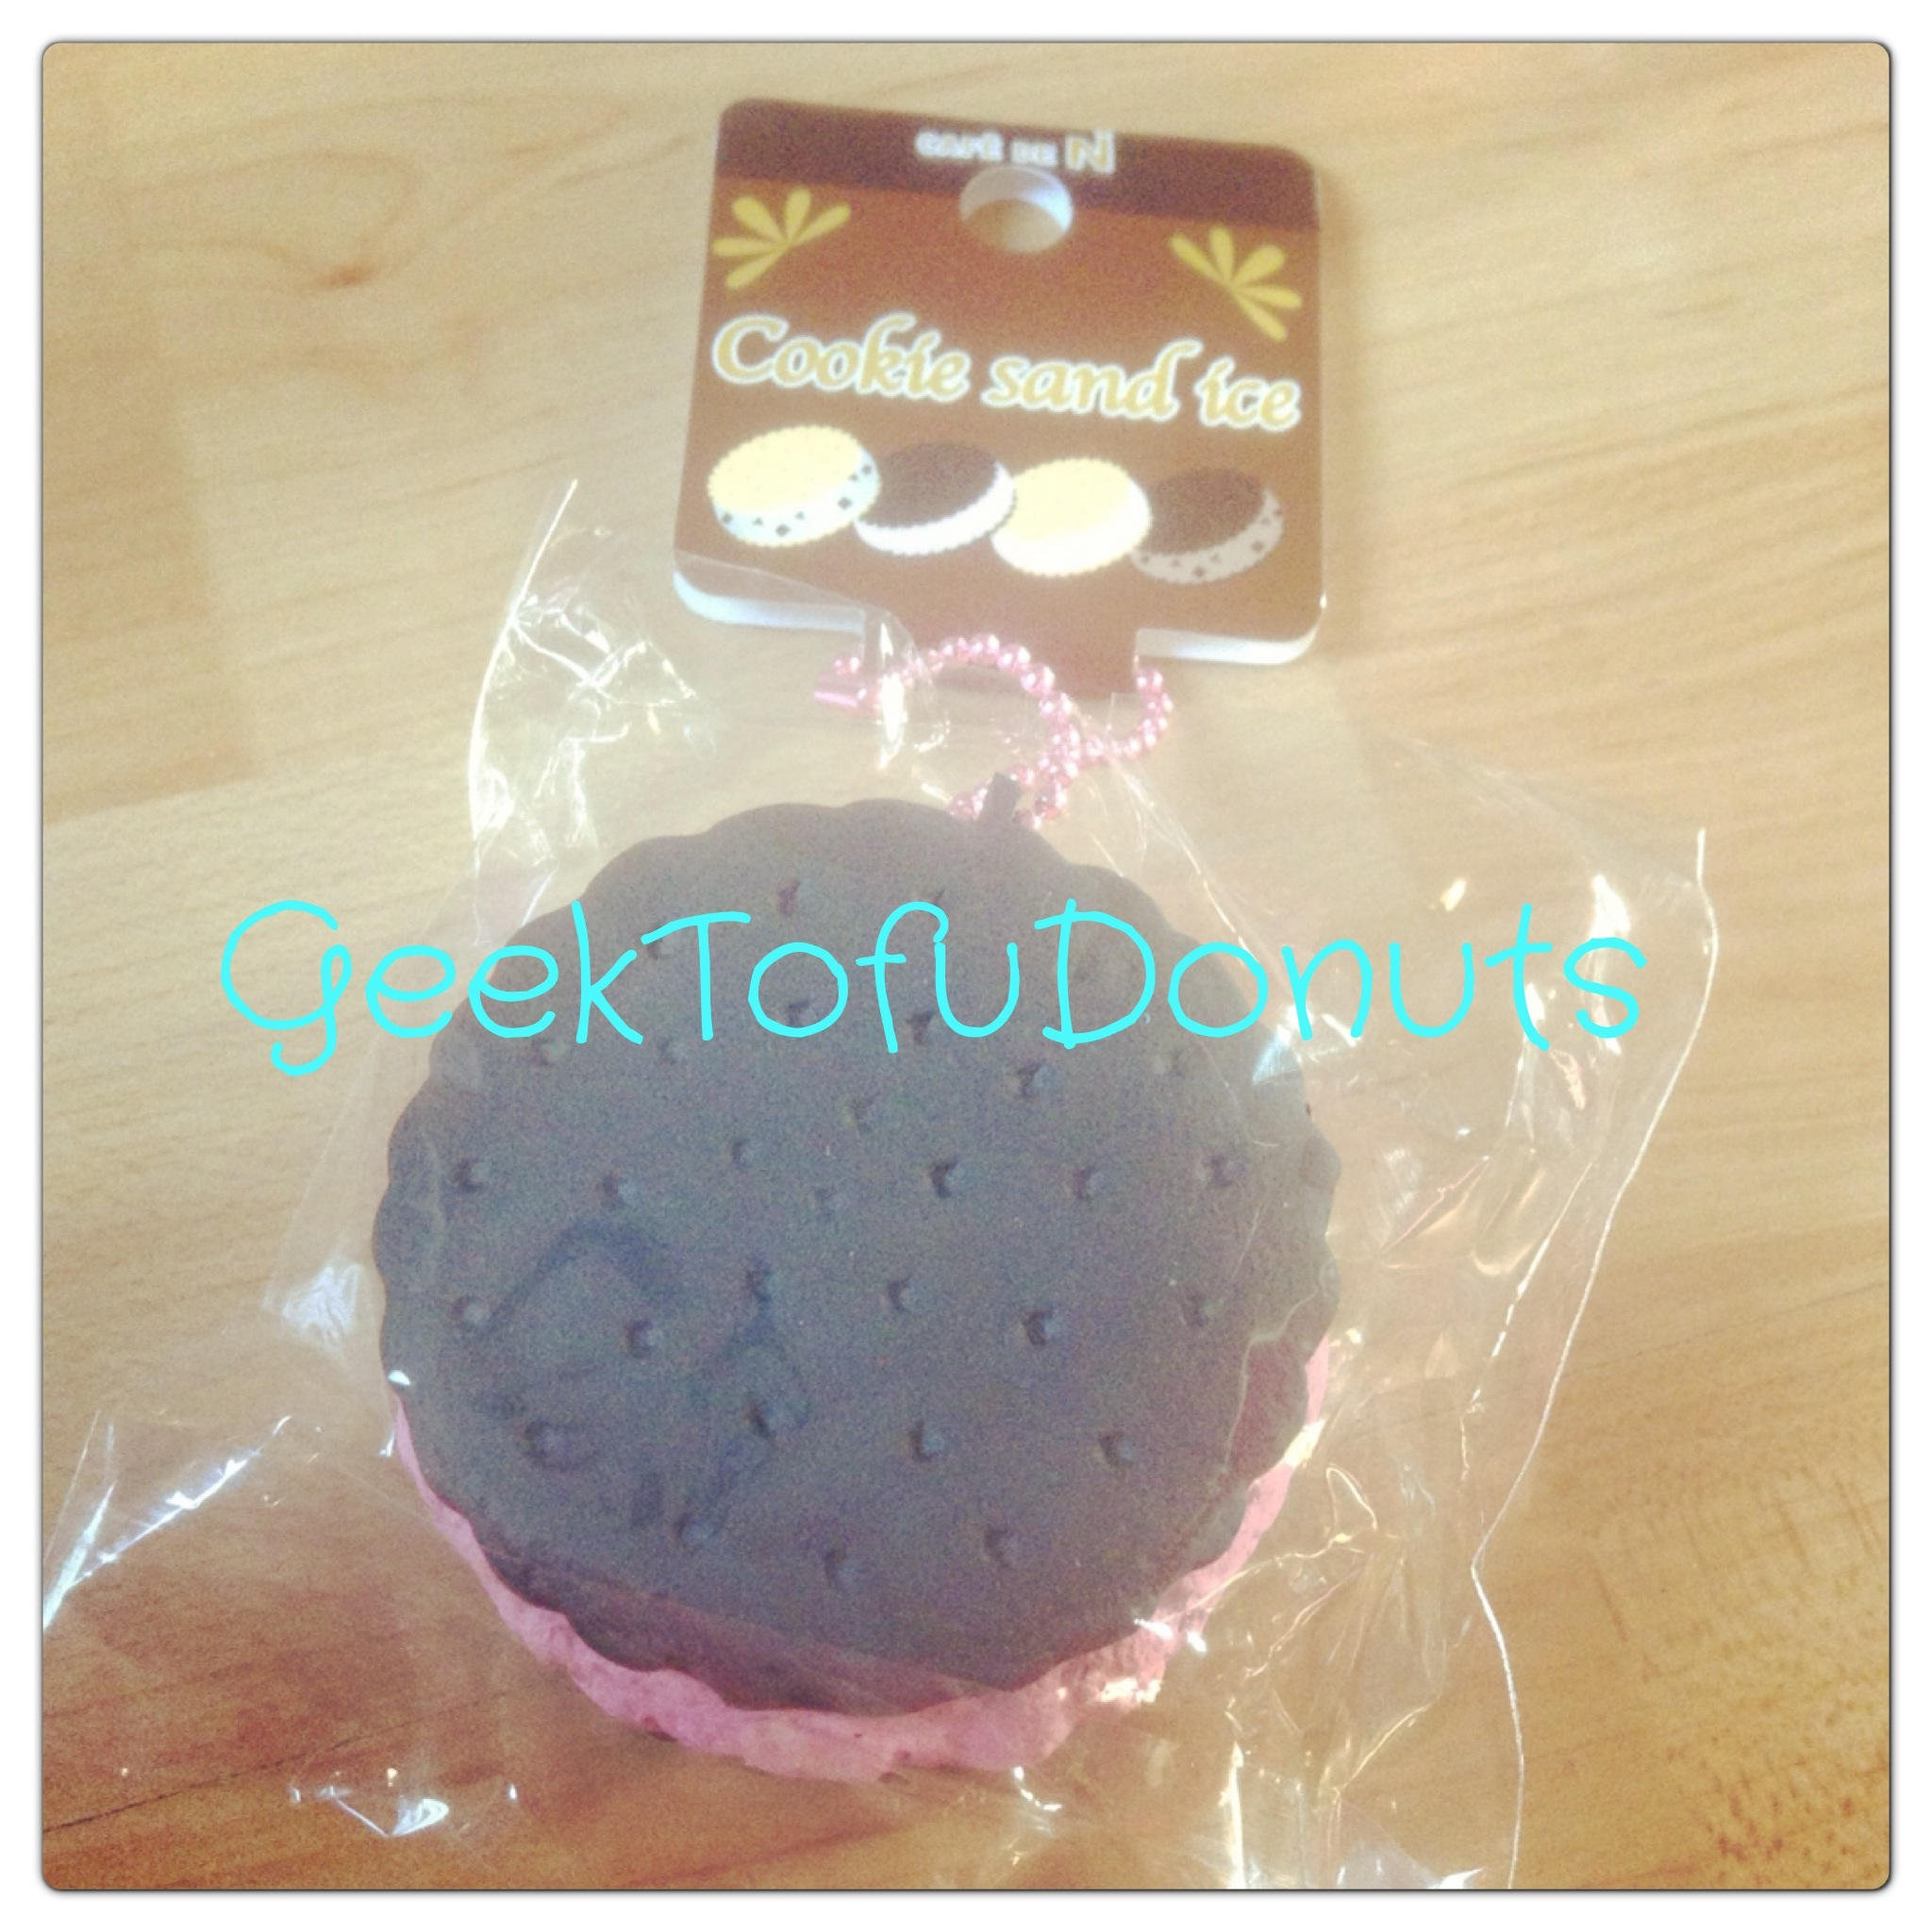 Cafe De N Squishy Tag : GeekTofuDonuts Reproduced Cafe De N Cookie Squishy Online Store Powered by Storenvy